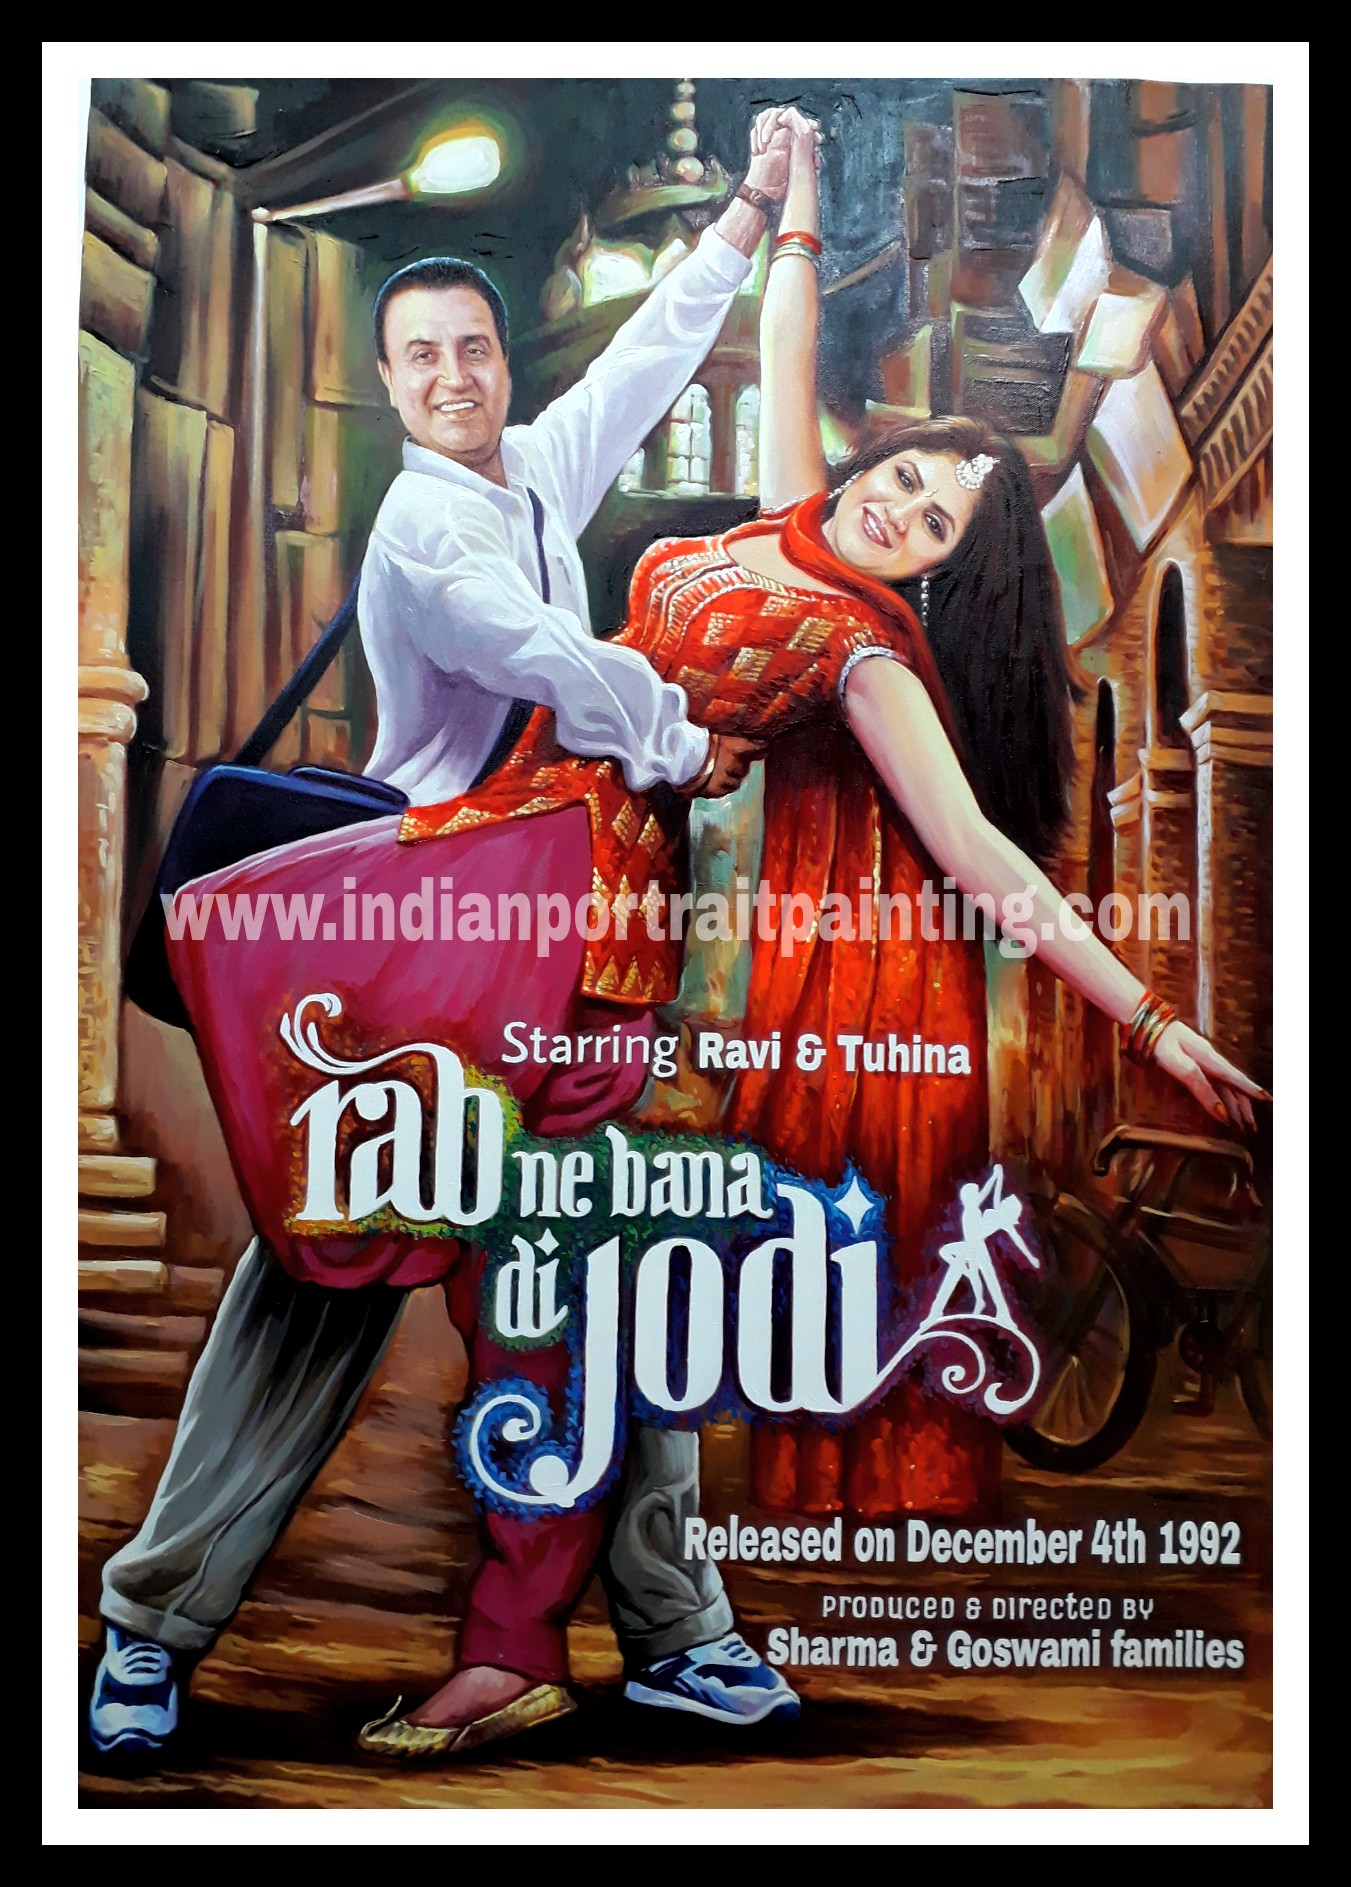 Custom bollywood movie posters